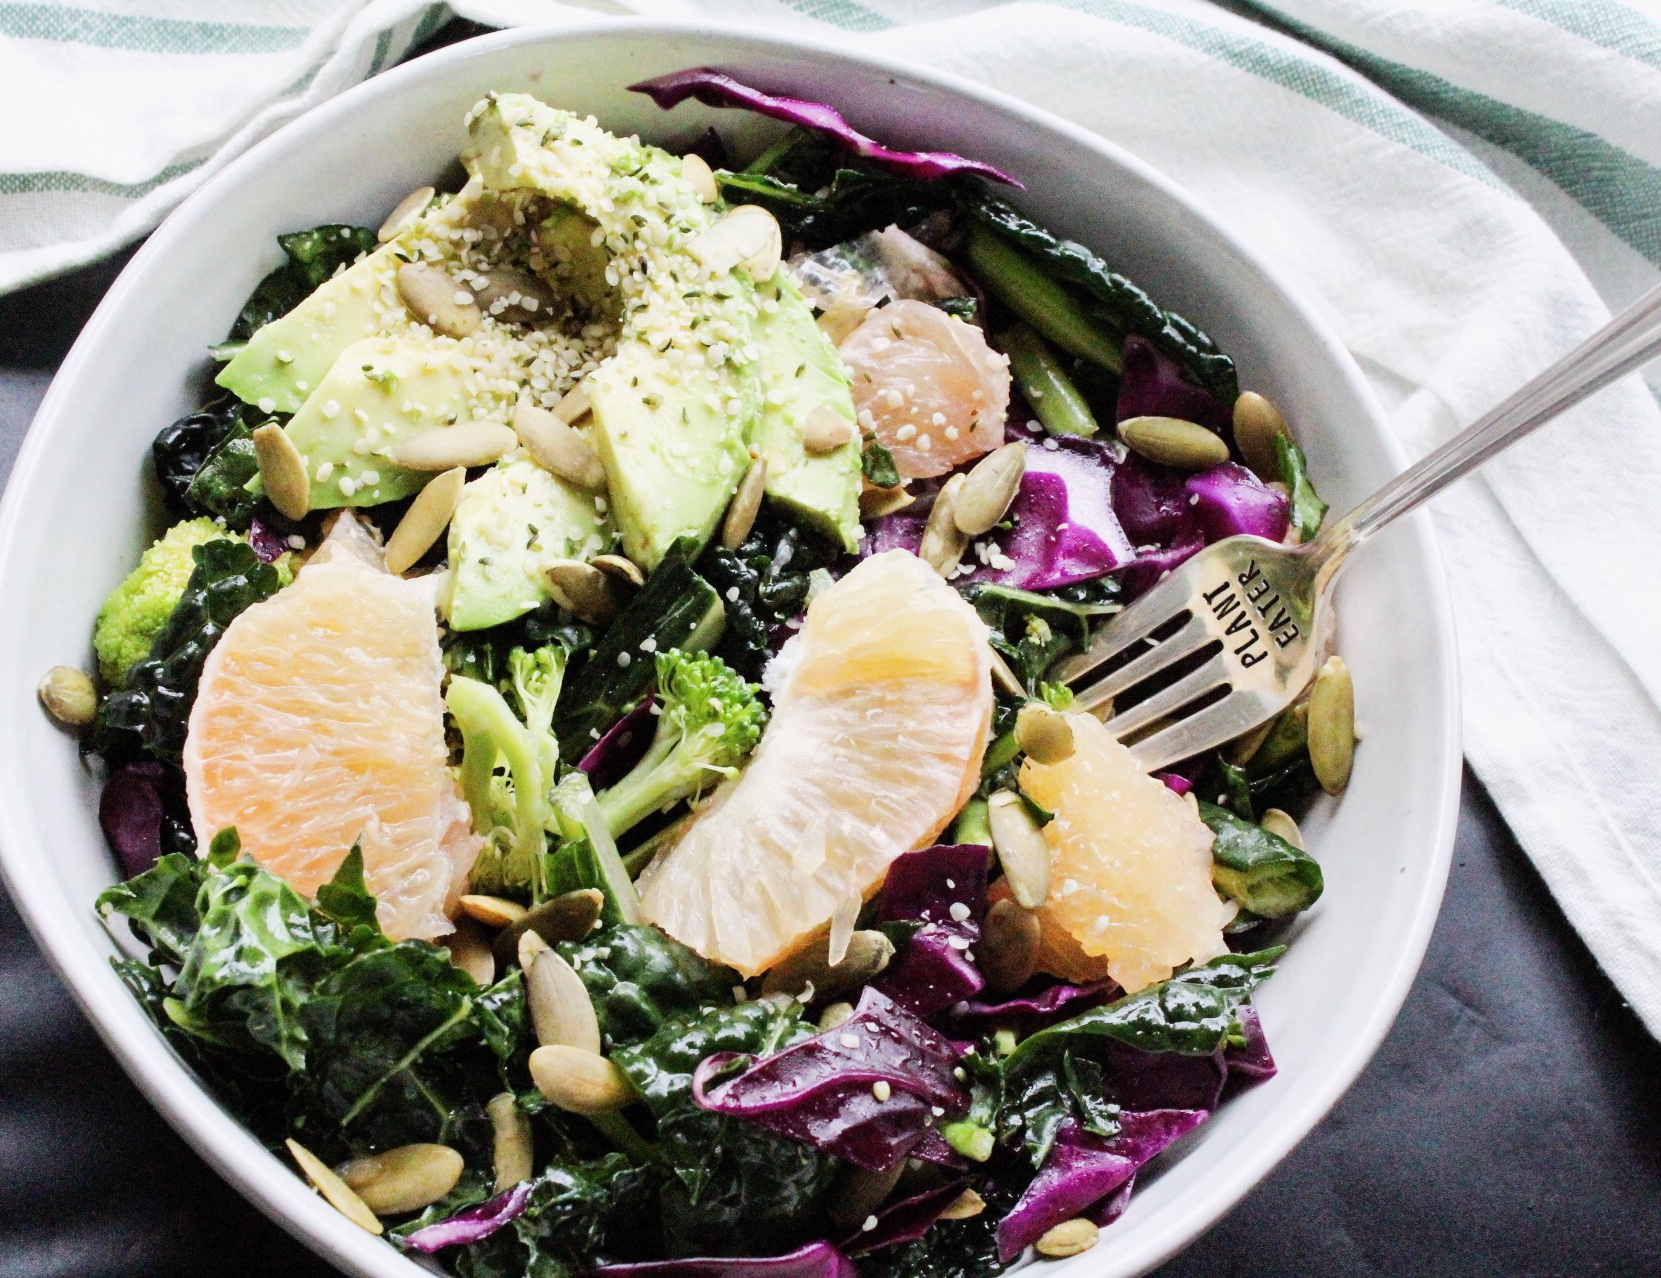 Kale, Grapefruit, Avocado Salad - Eleat Nutrition